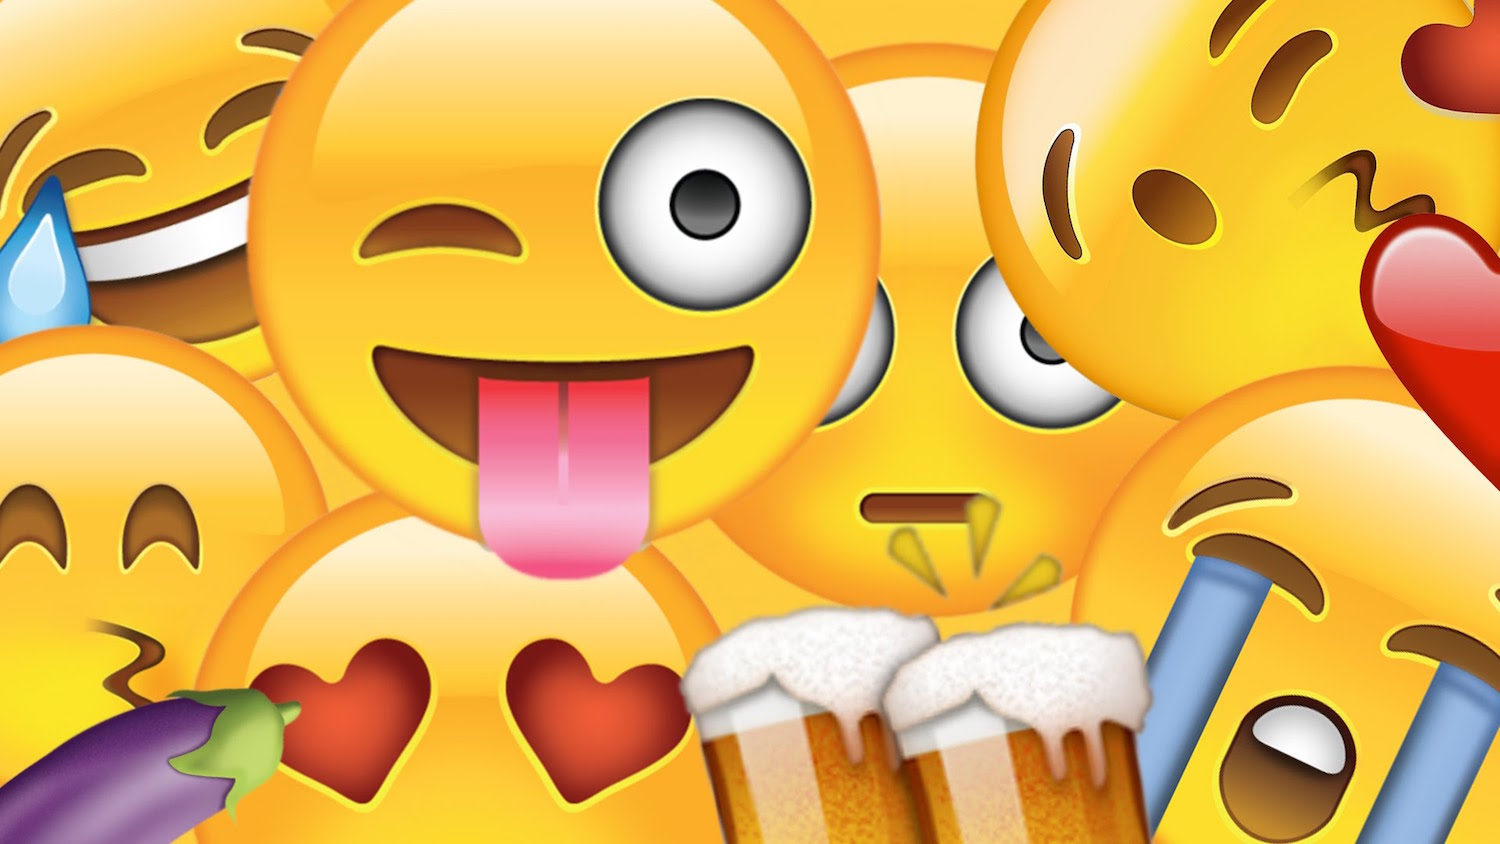 You little Emoji? You will see new in a future version of iOS